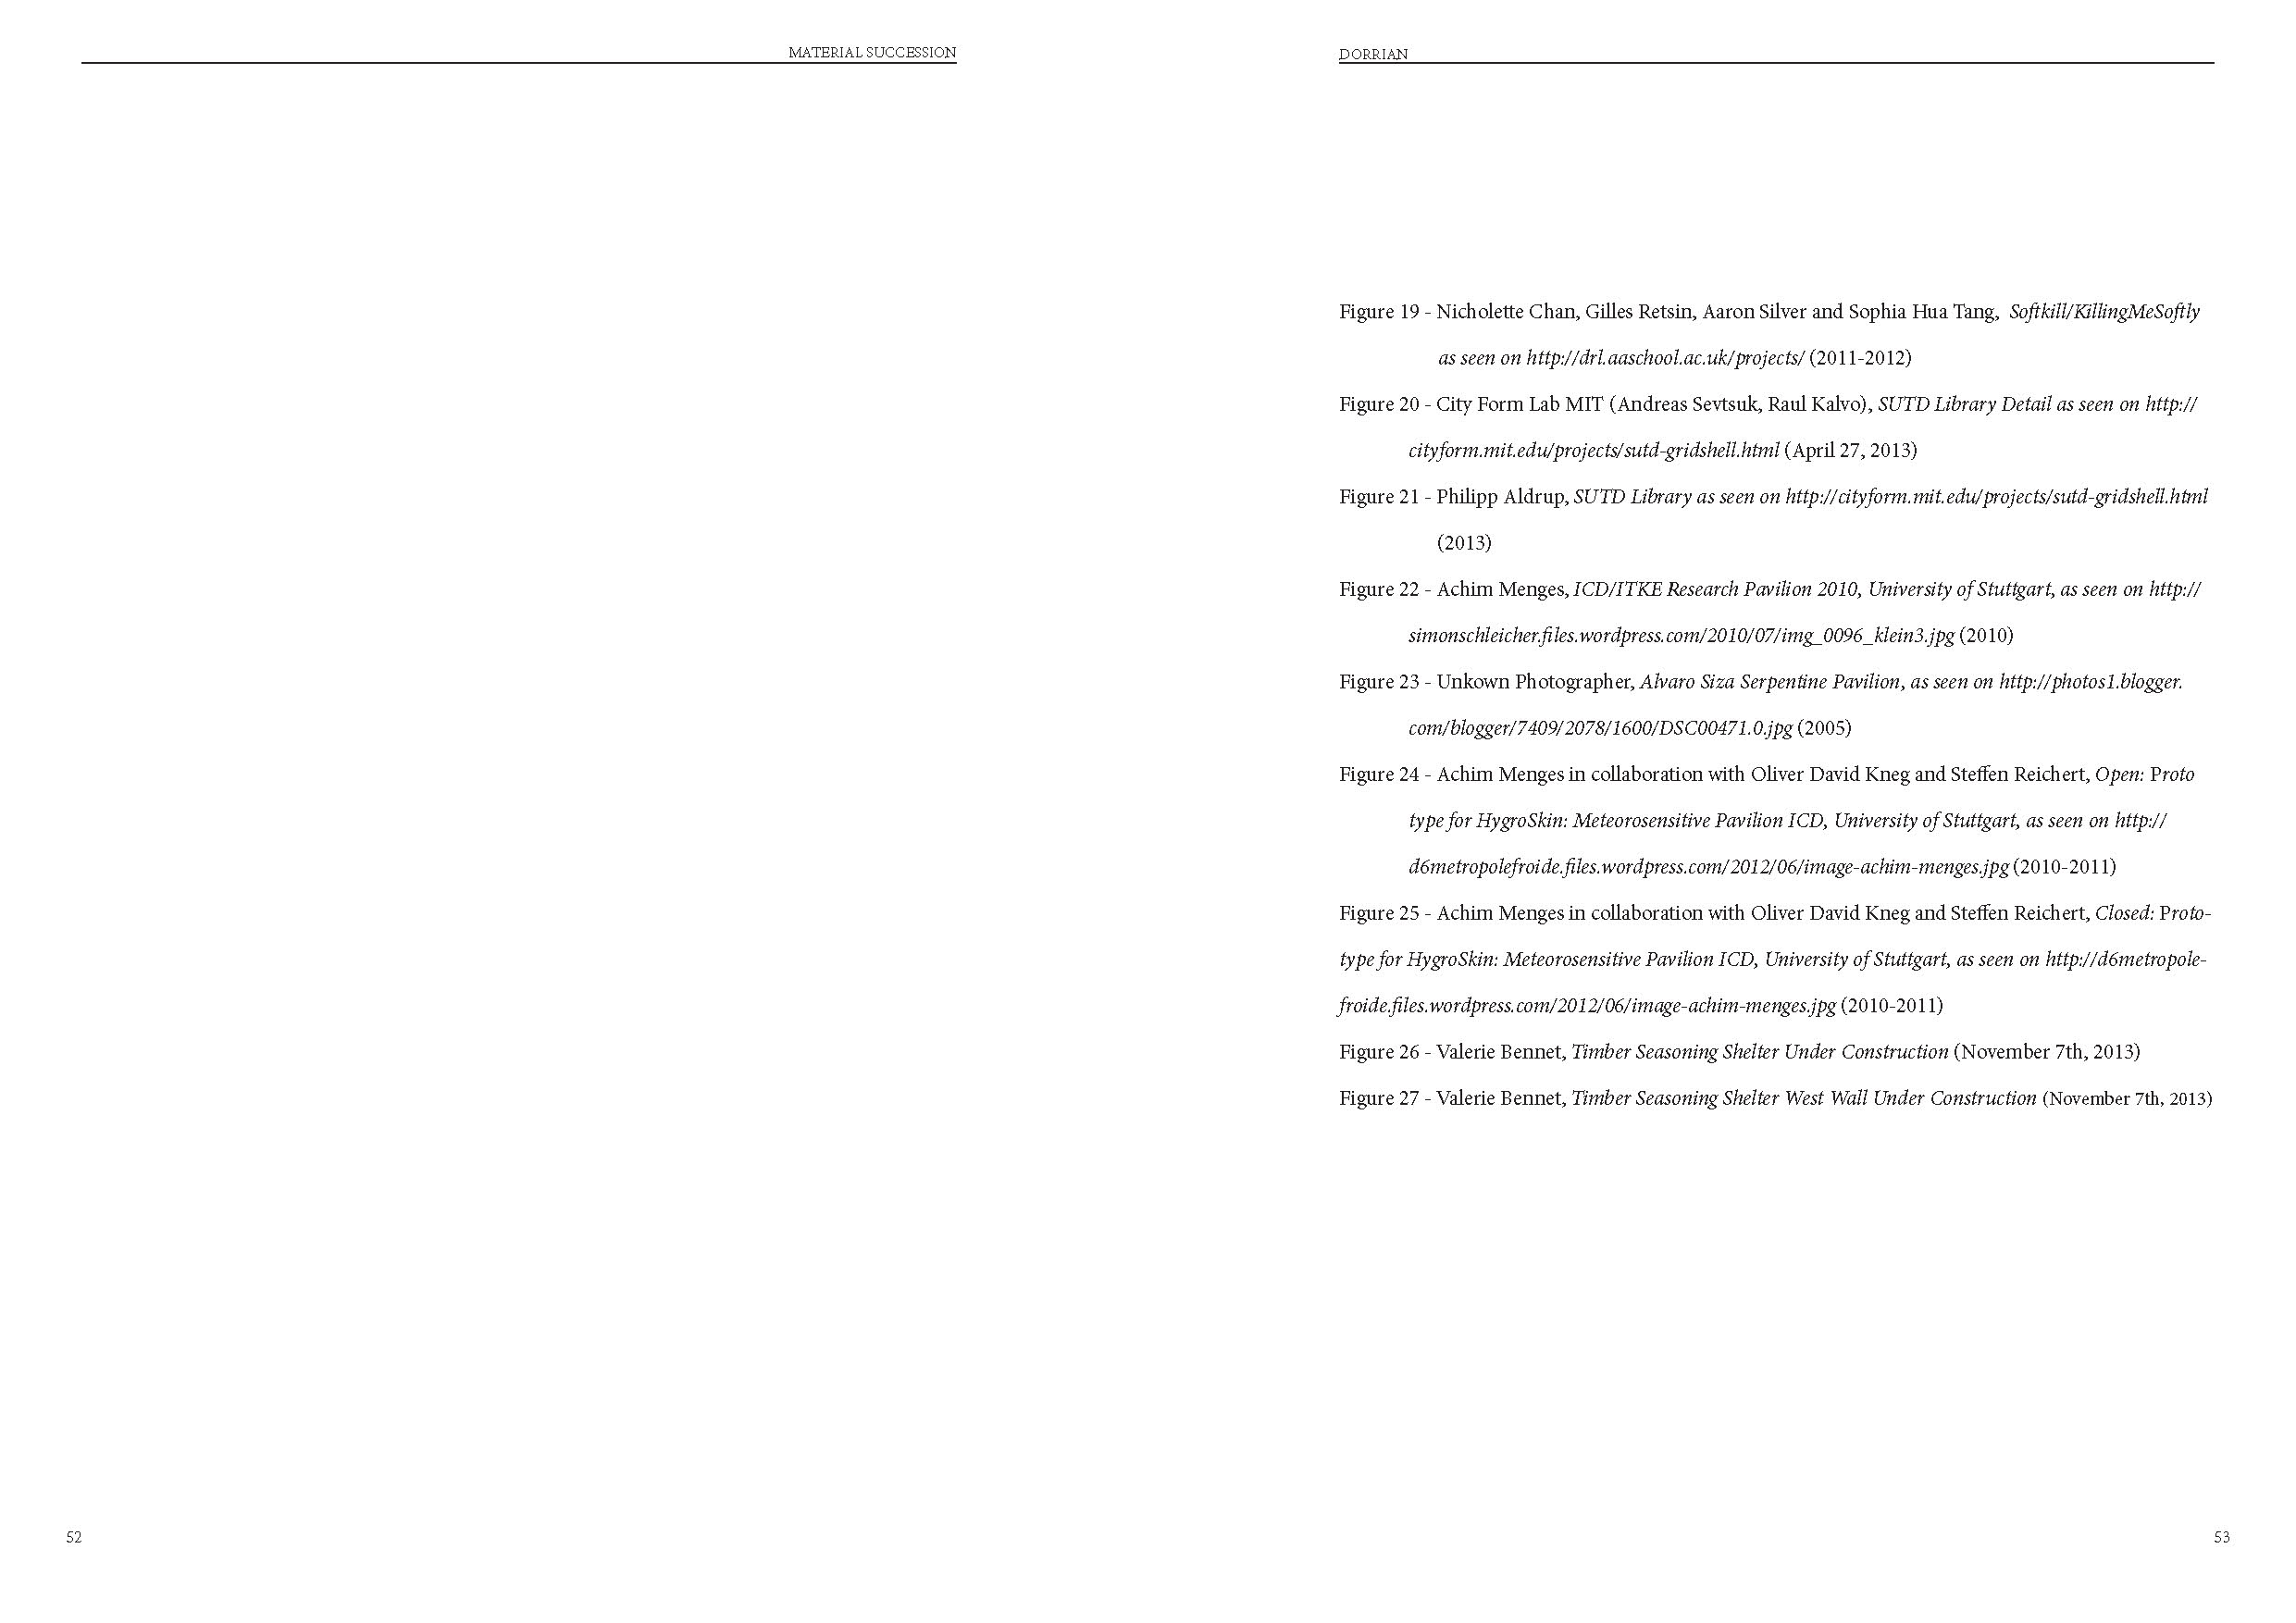 130131_Material SuccessionFORSUBMITTAL_Page_31.jpg